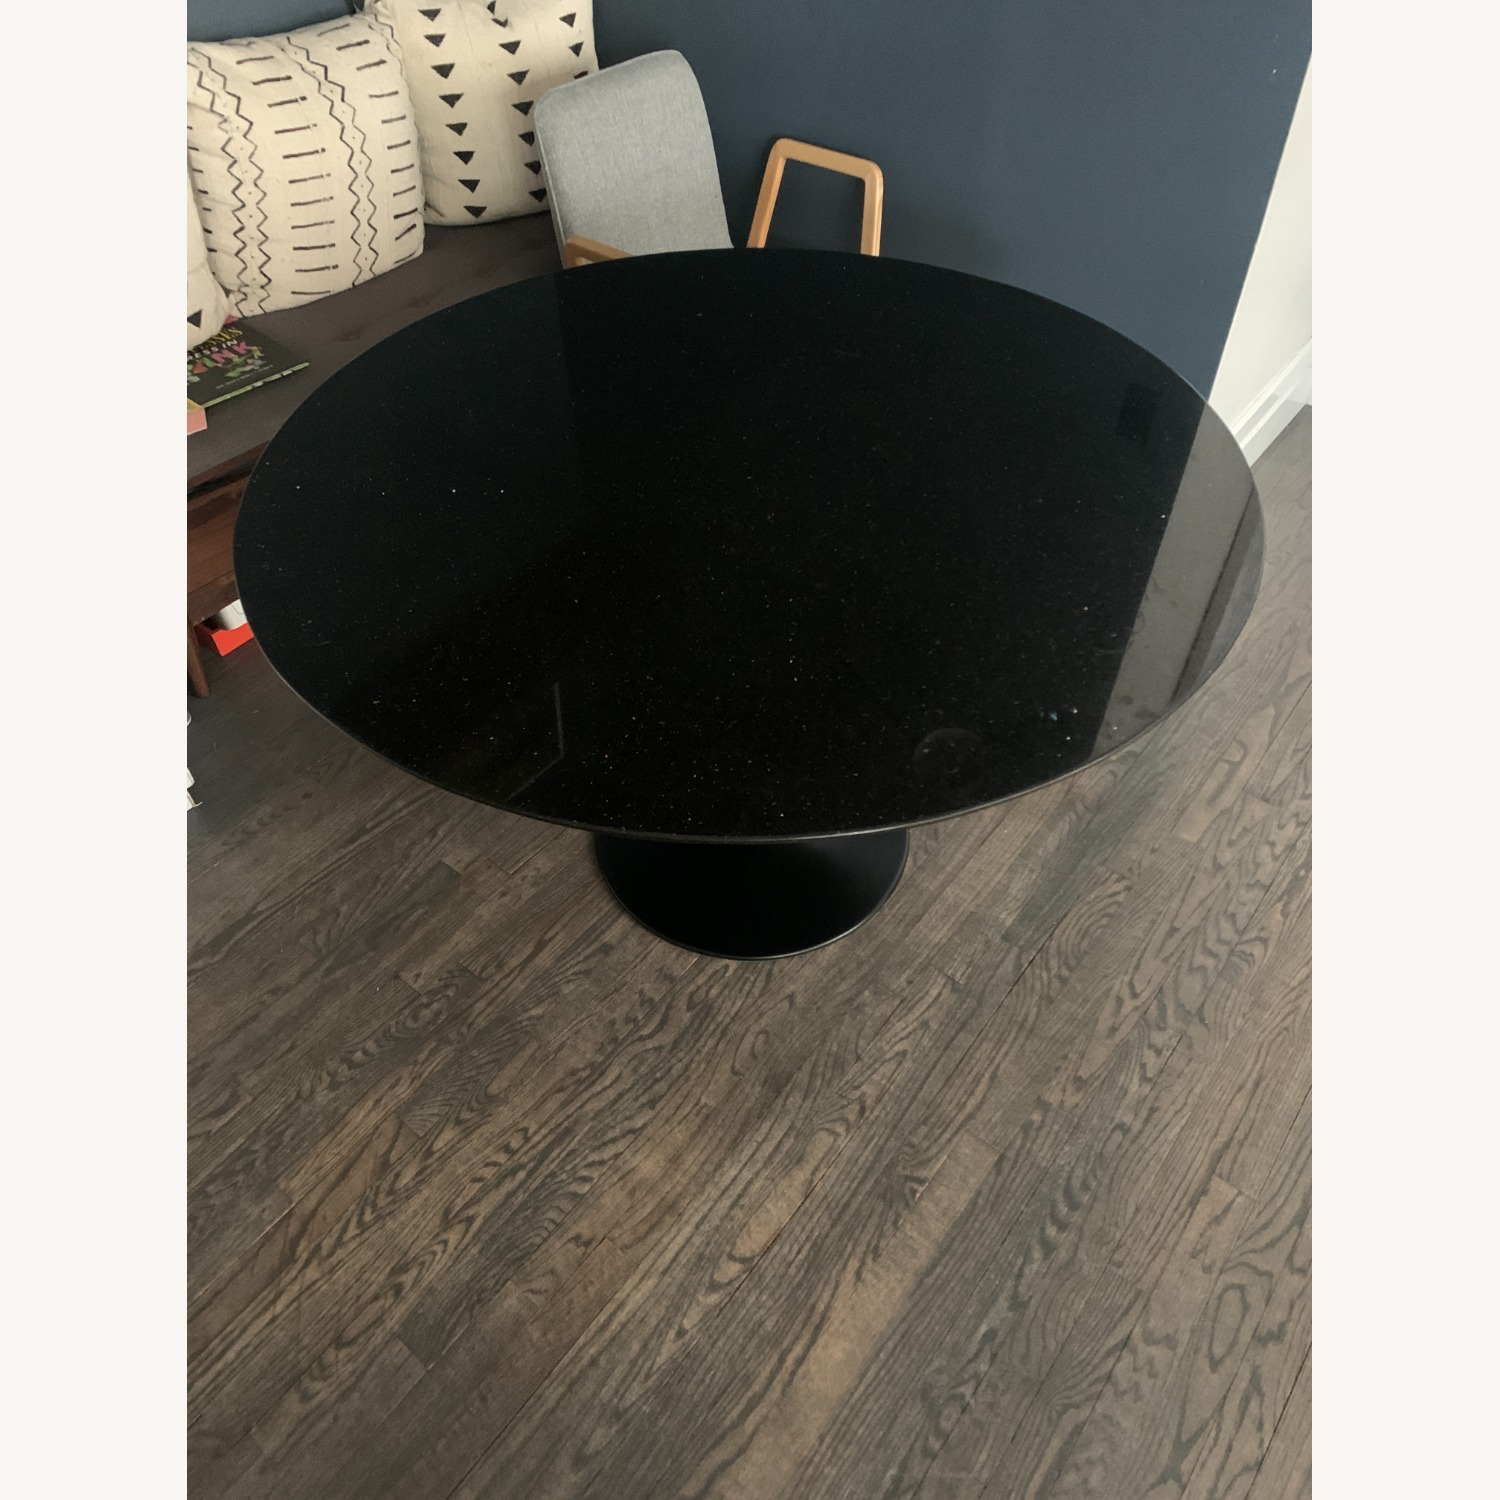 Modern Living Supplies Black Glass Marble Table - image-1